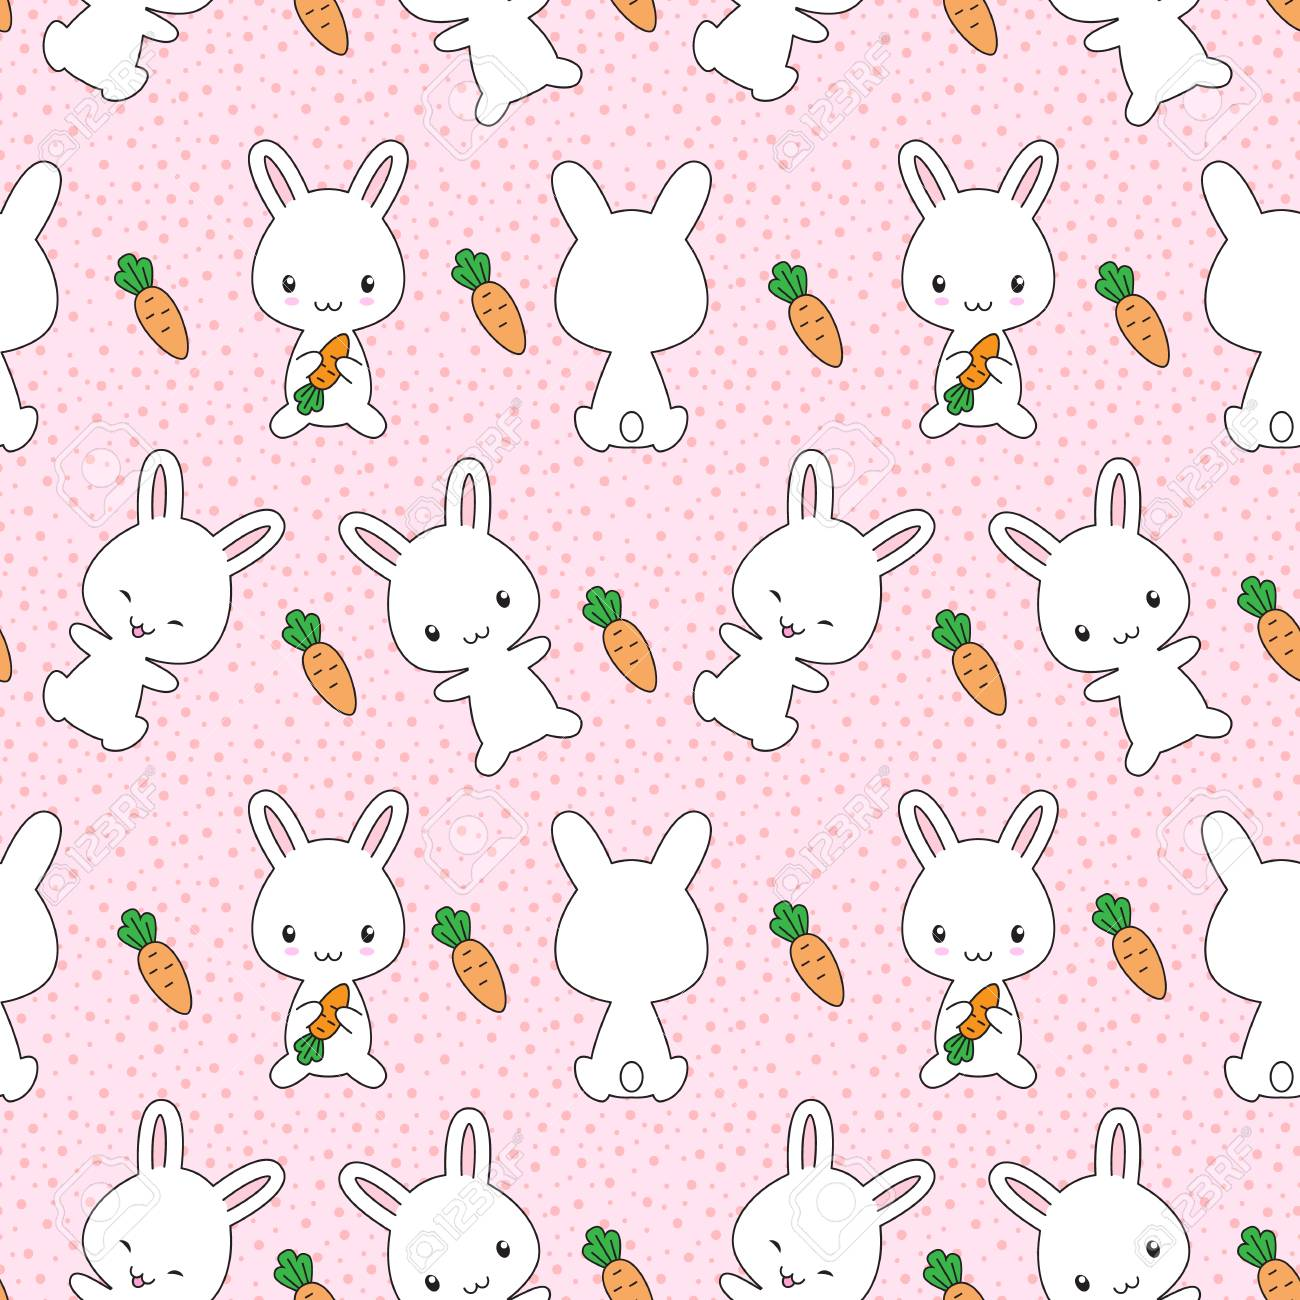 Cute Kawaii Bunnies With Carrots Seamless Pattern Royalty Free